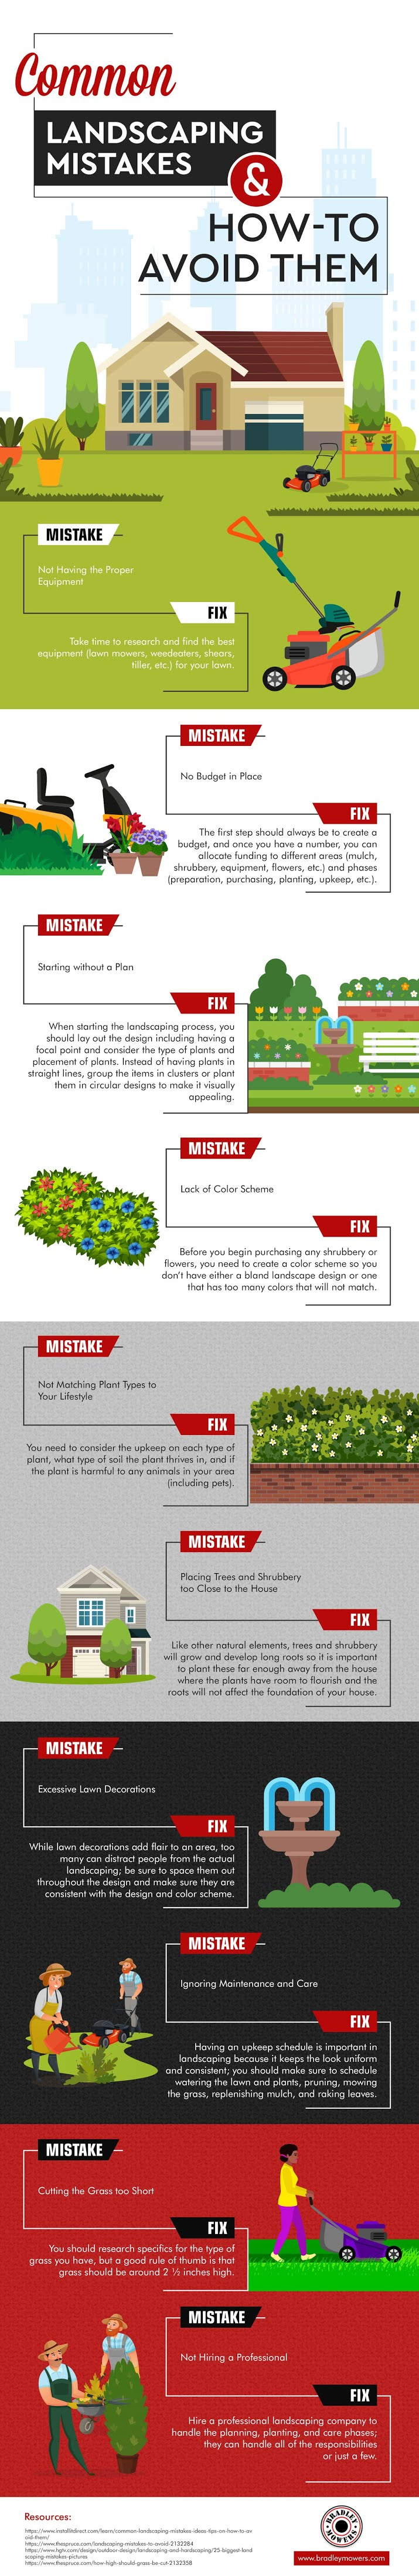 Common Landscaping Mistakes and How-To Avoid Them #infographic